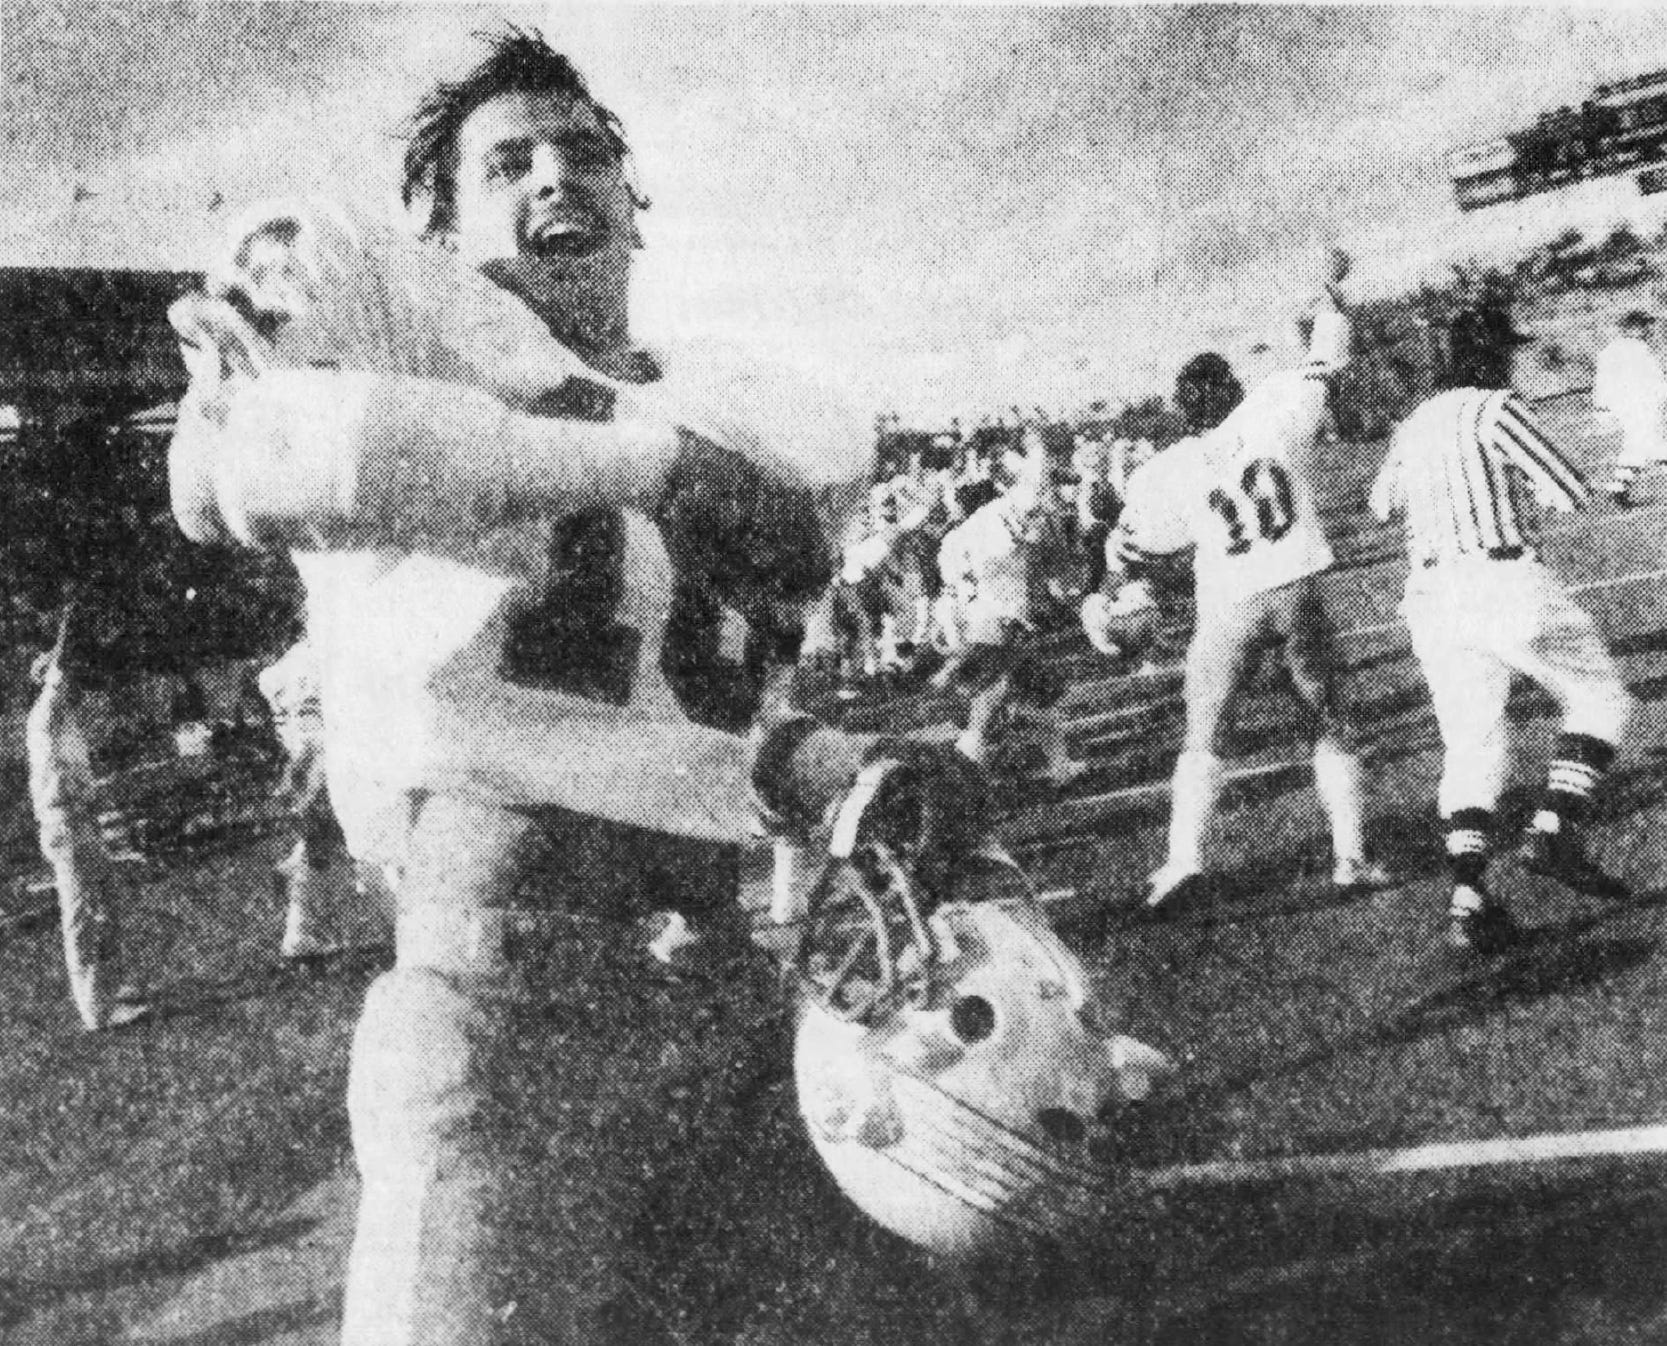 From 1985: Drake's Alan Schuckman celebrates after their 20-17 win Oct. 5, 1985 against Iowa State.